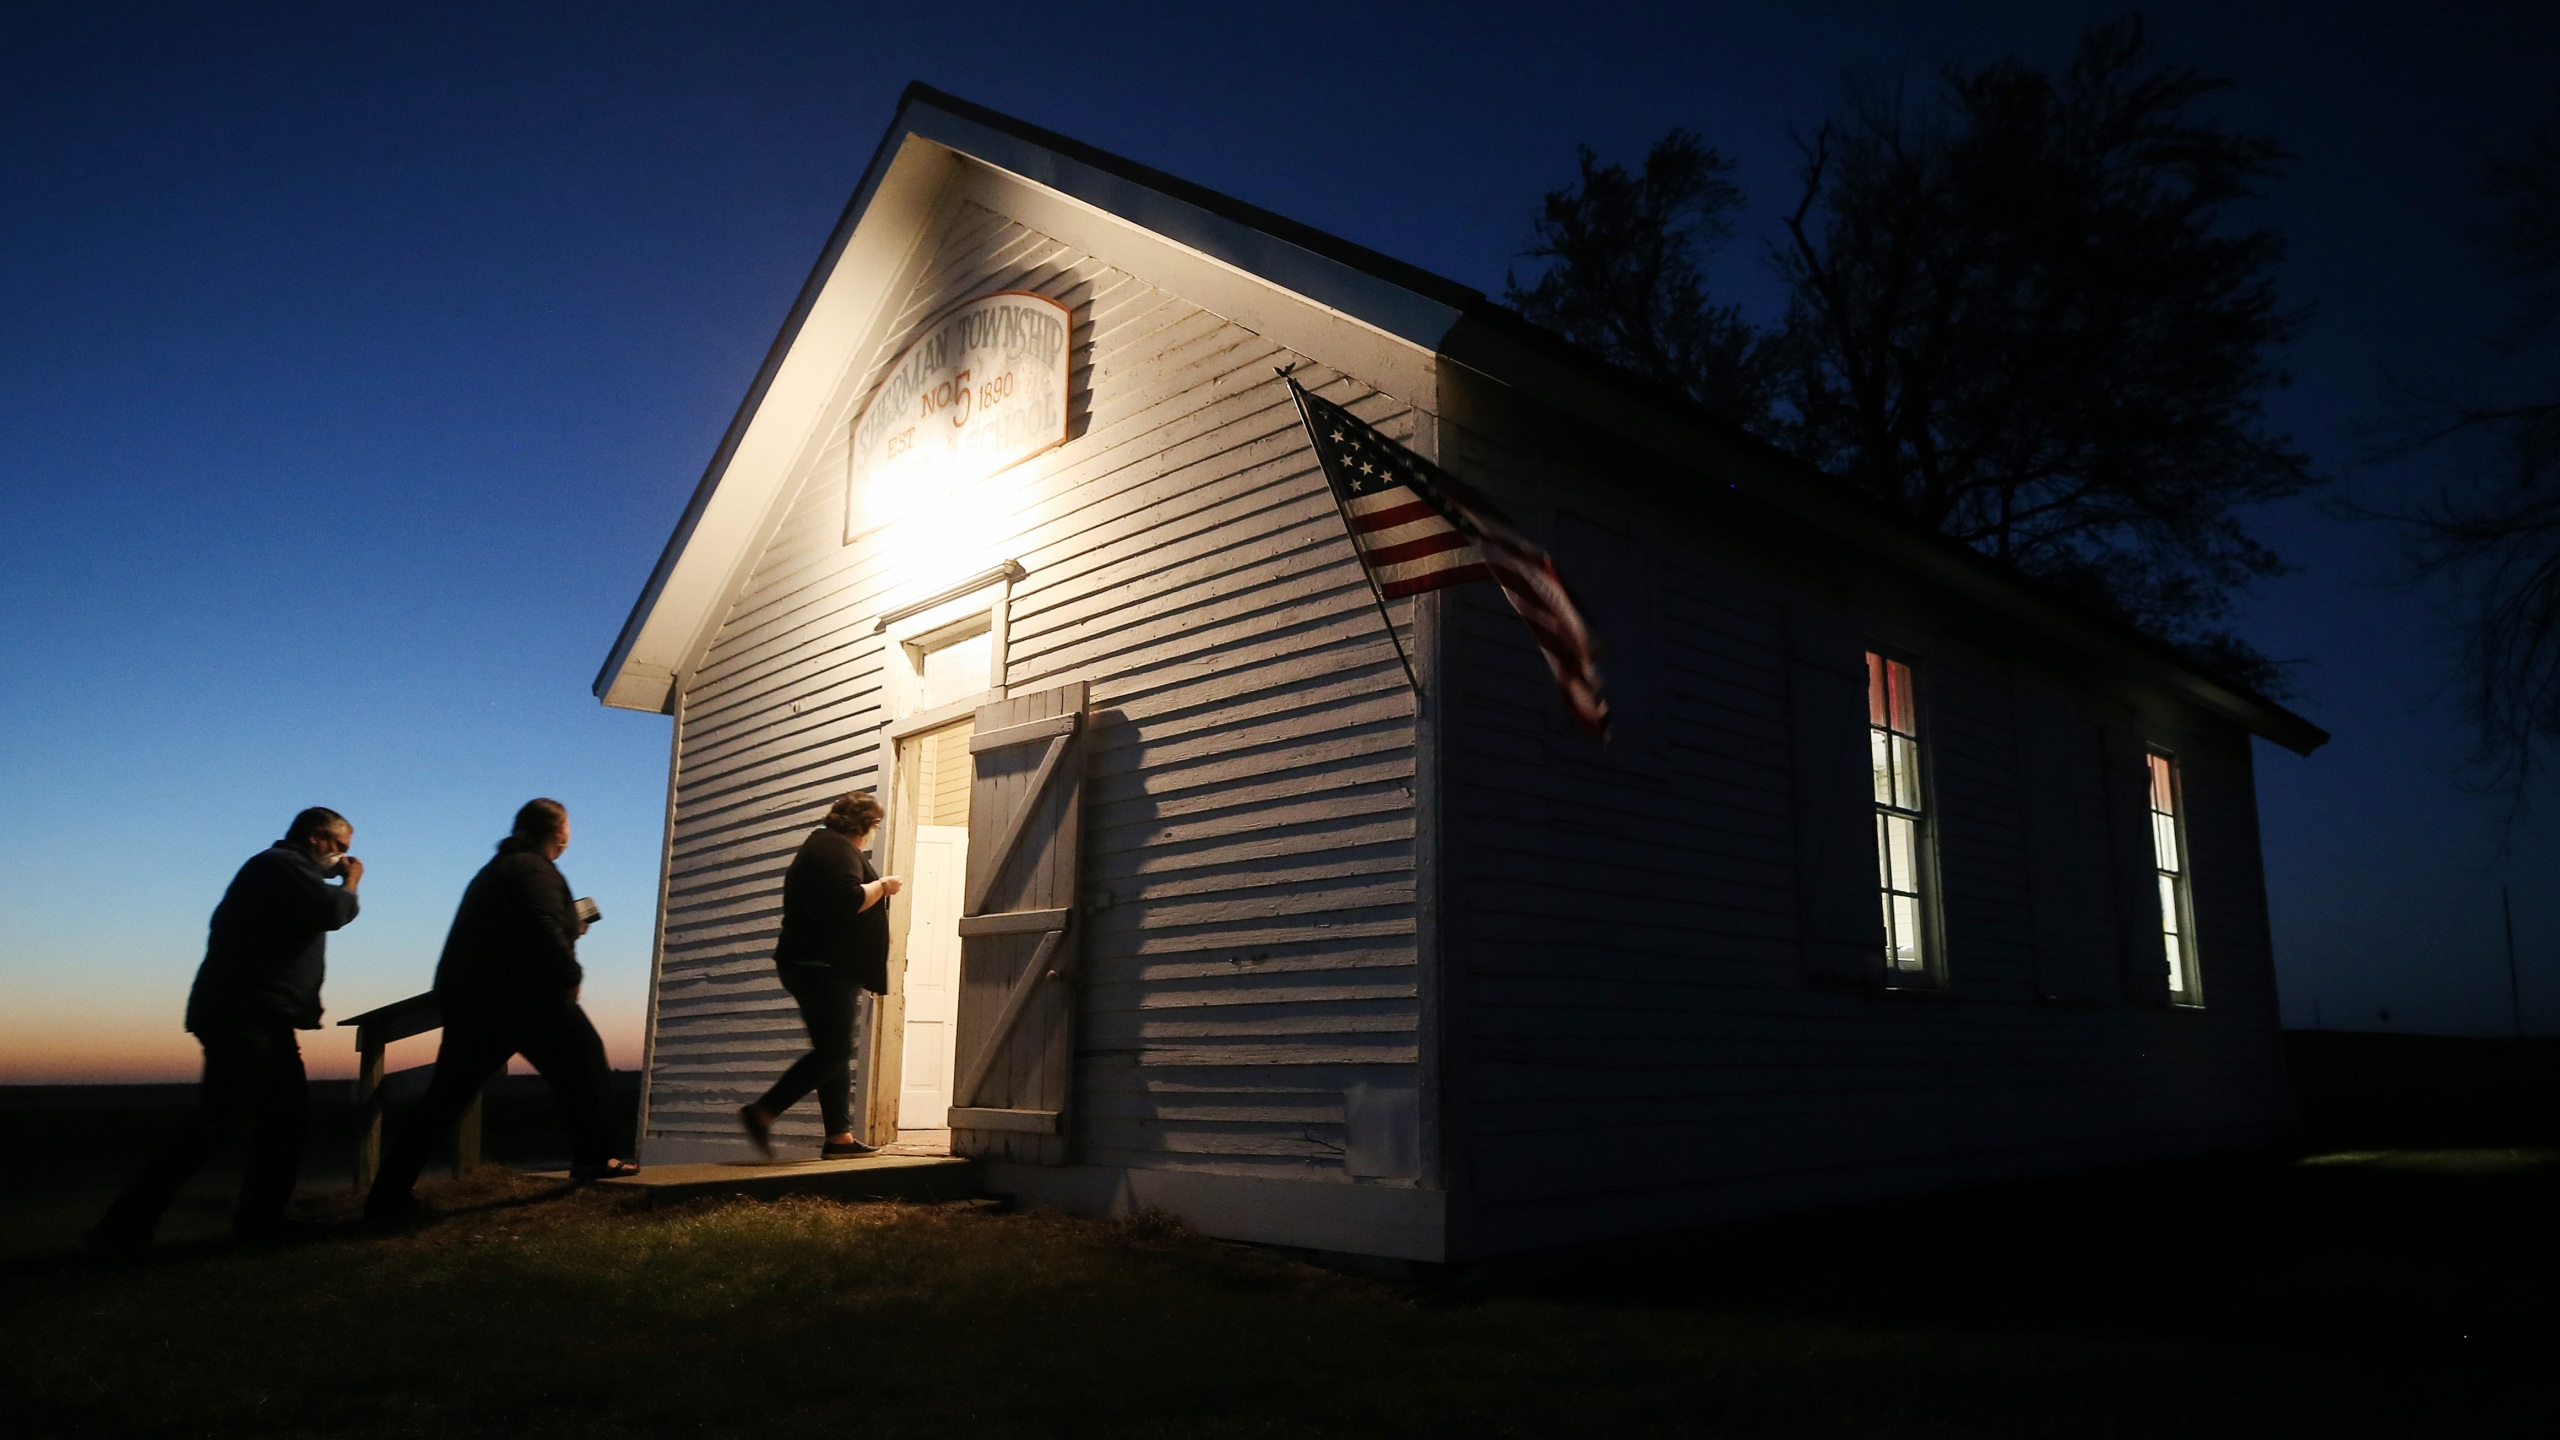 Voters enter a polling place at dusk to cast their ballots at Sherman Township Hall, a former one room schoolhouse in Zearing, Iowa, on Nov. 3, 2020. (Mario Tama / Getty Images)